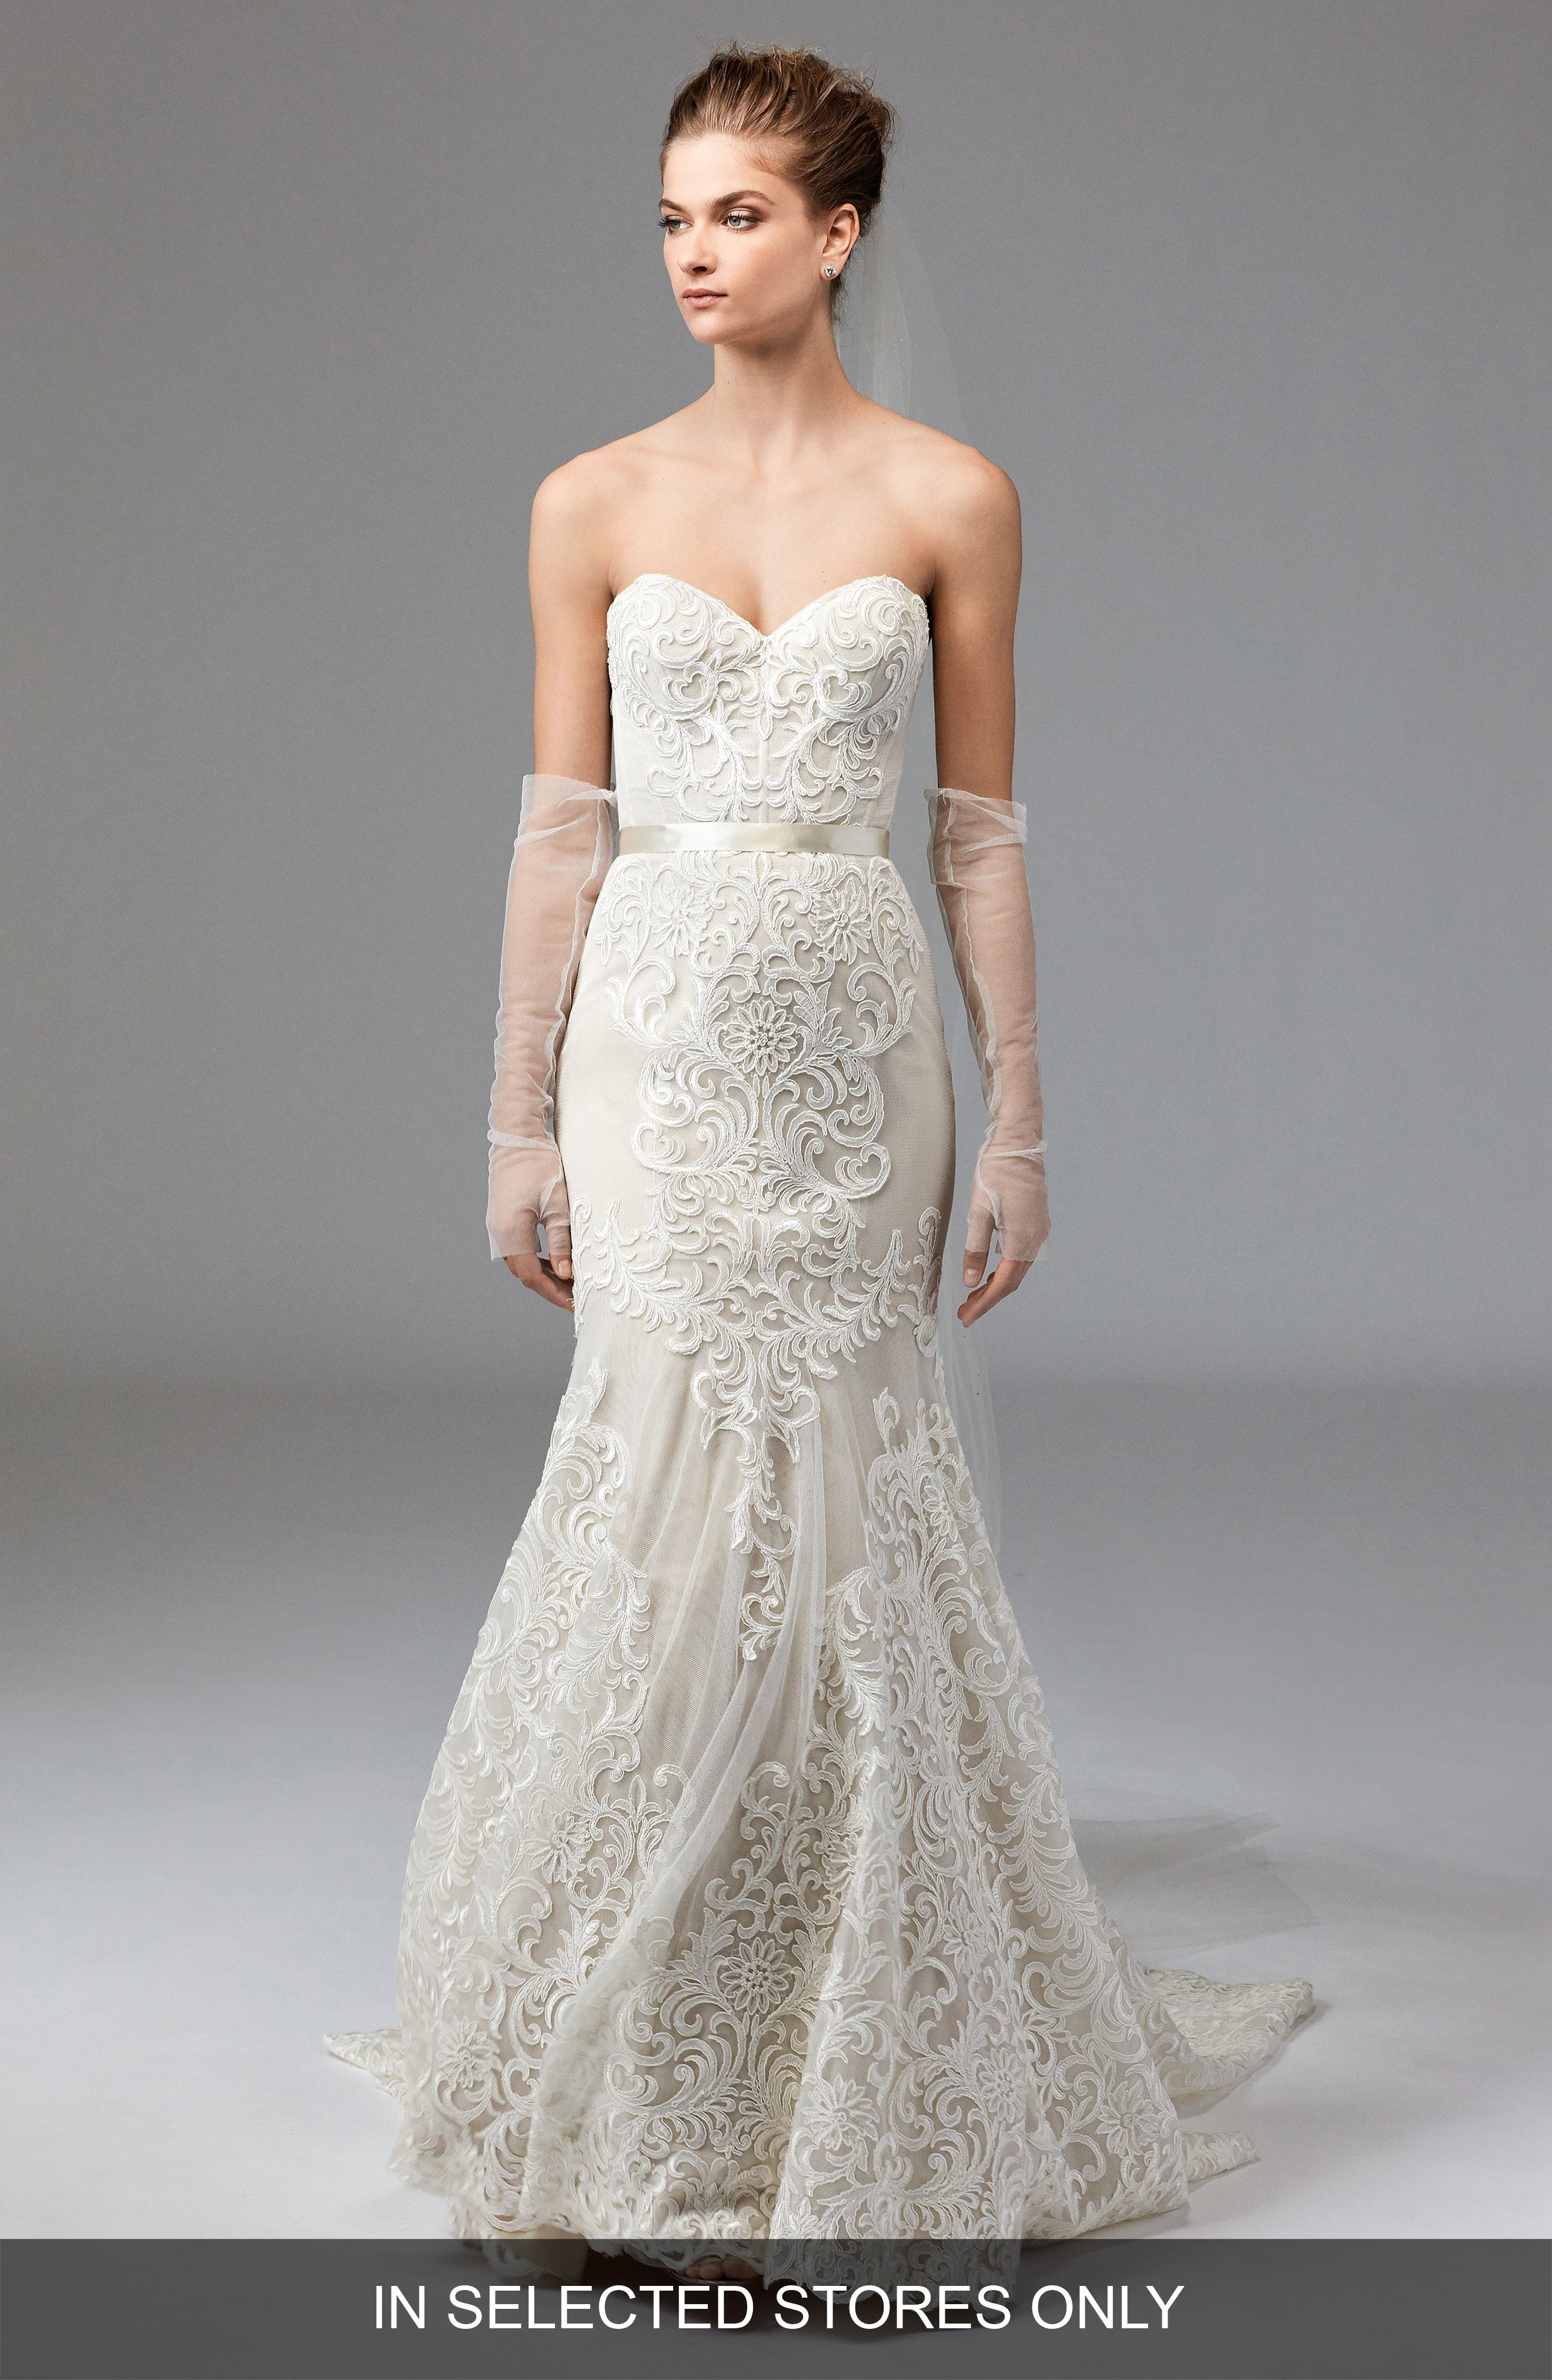 Alice Embroidered Strapless Trumpet Gown,                             Main thumbnail 1, color,                             Ivory/Champagne/Vanilla Bean